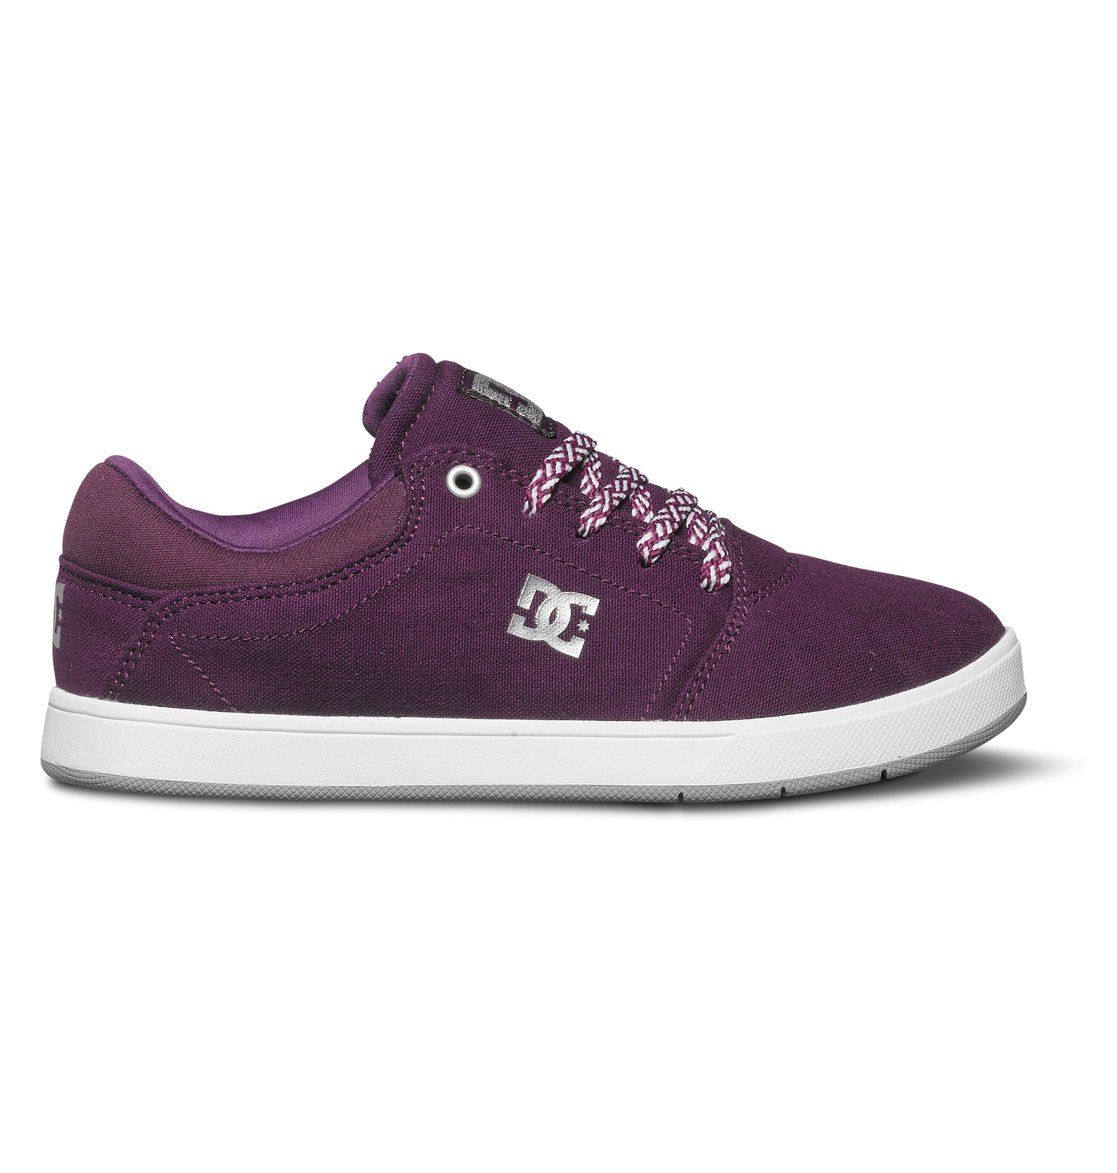 new product fe1df 99bd5 Crisis TX - Low Top Skaterschuhe ADBS100089 | DC Shoes